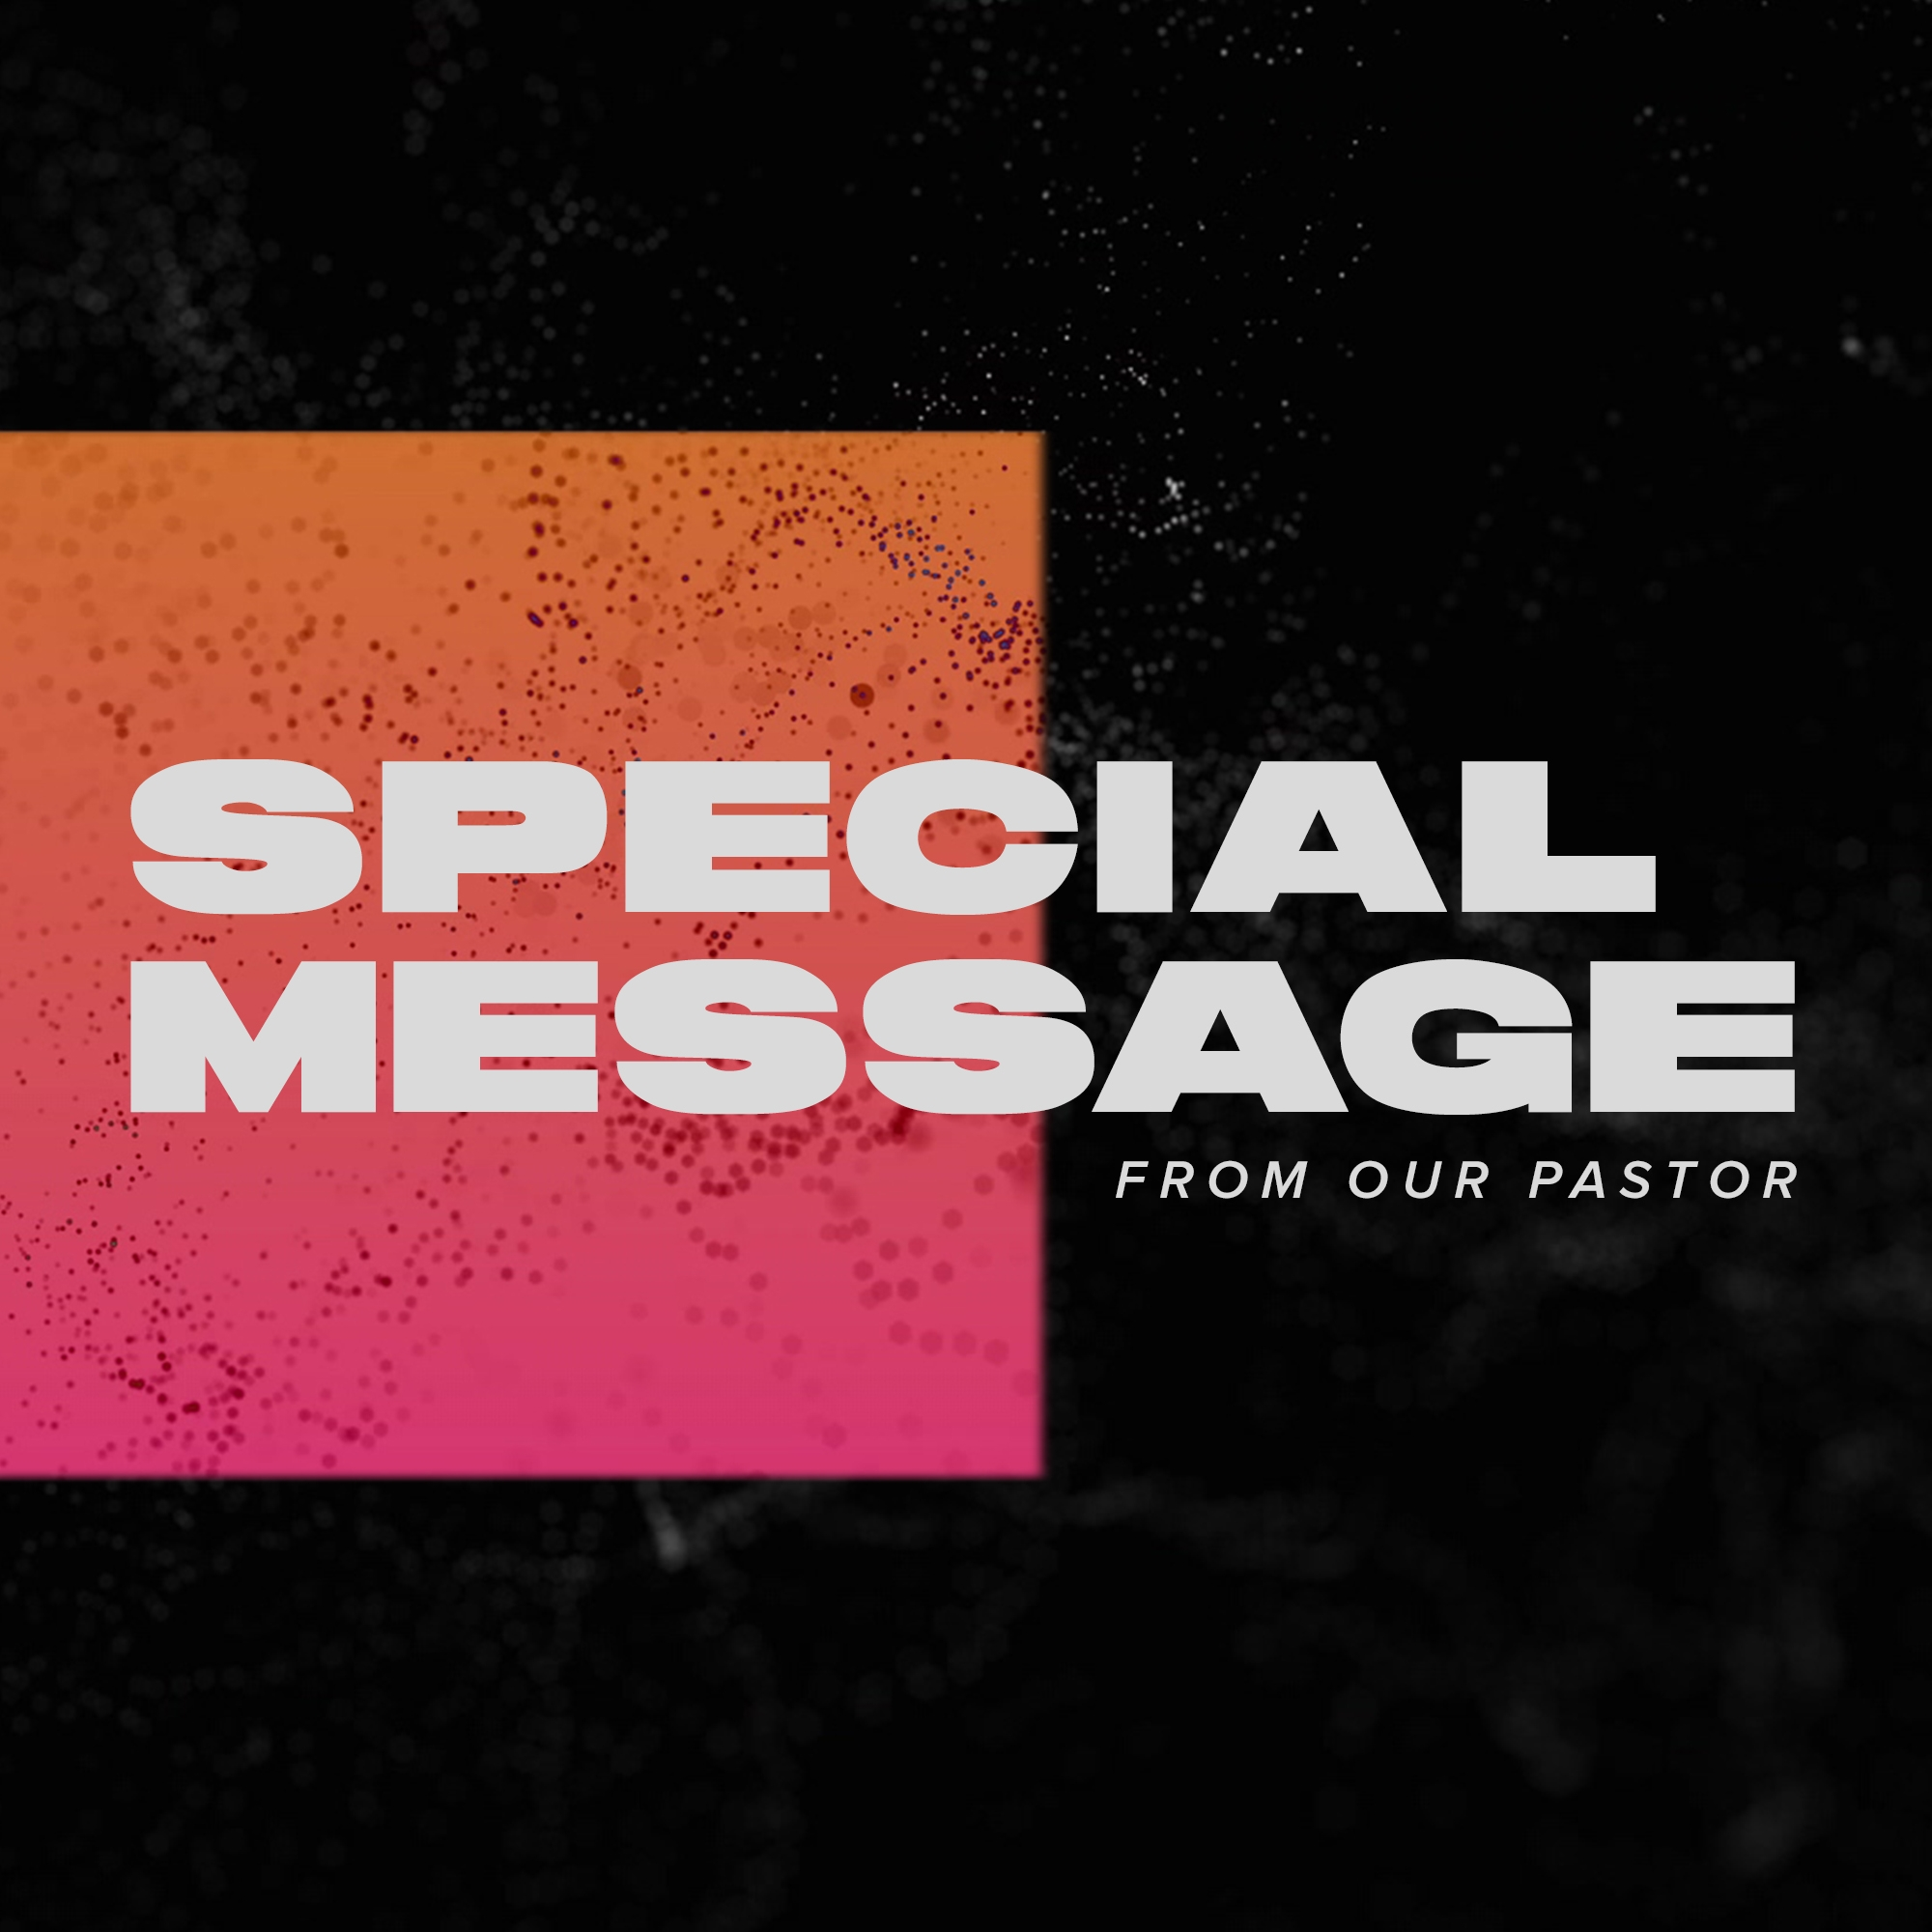 Exciting Updates From Our Pastors